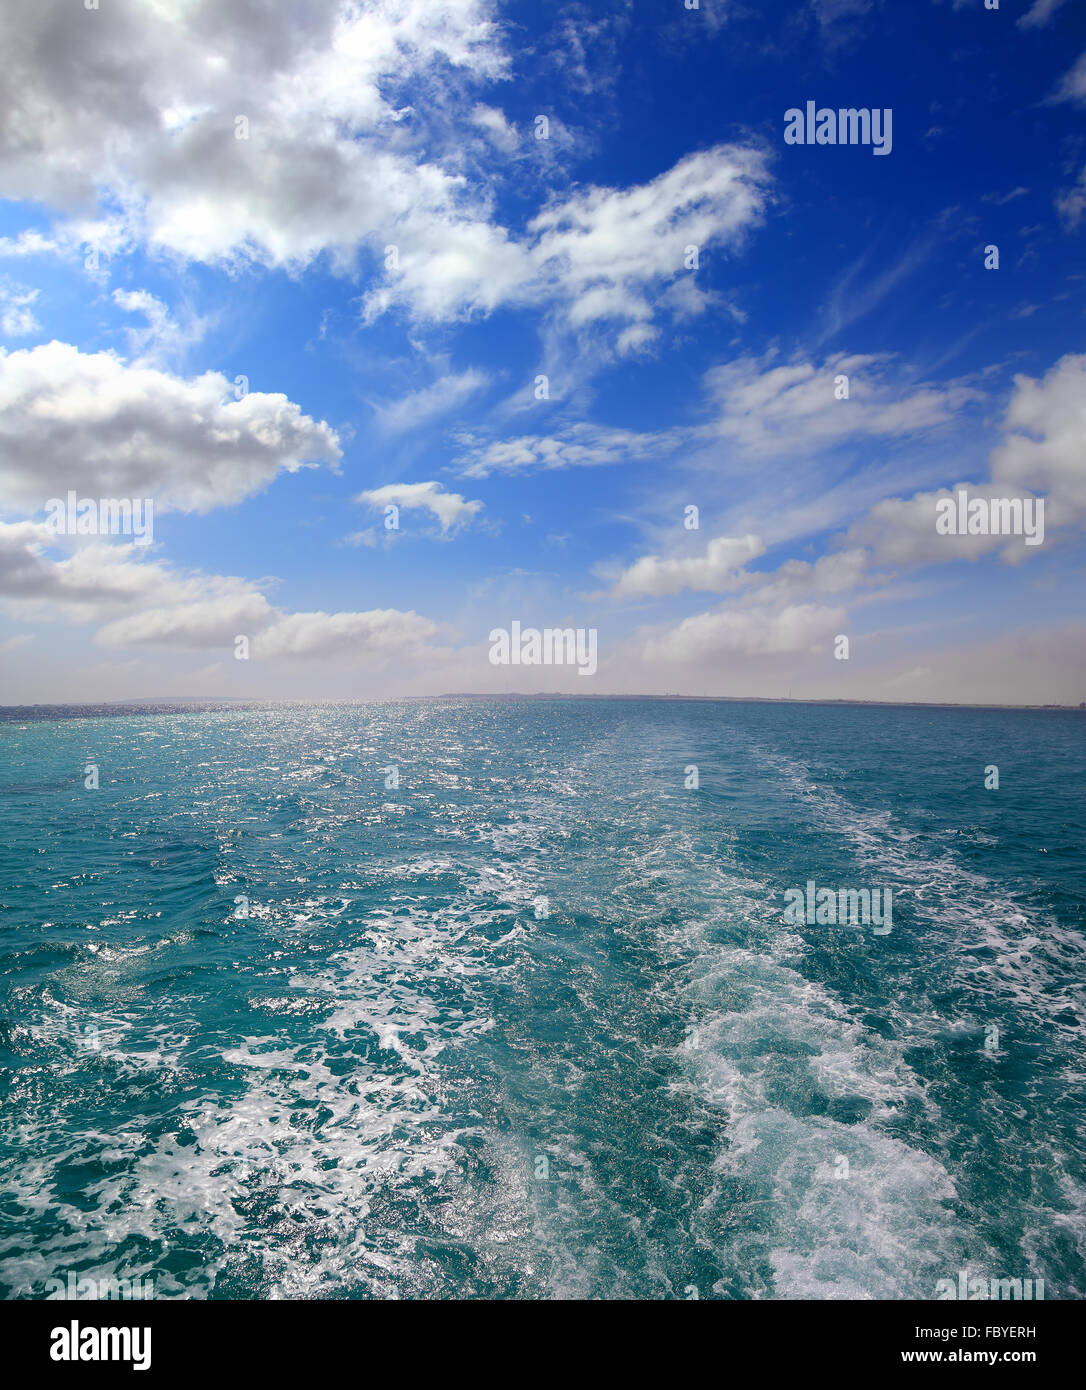 trace of ship - shooting from boat - Stock Image